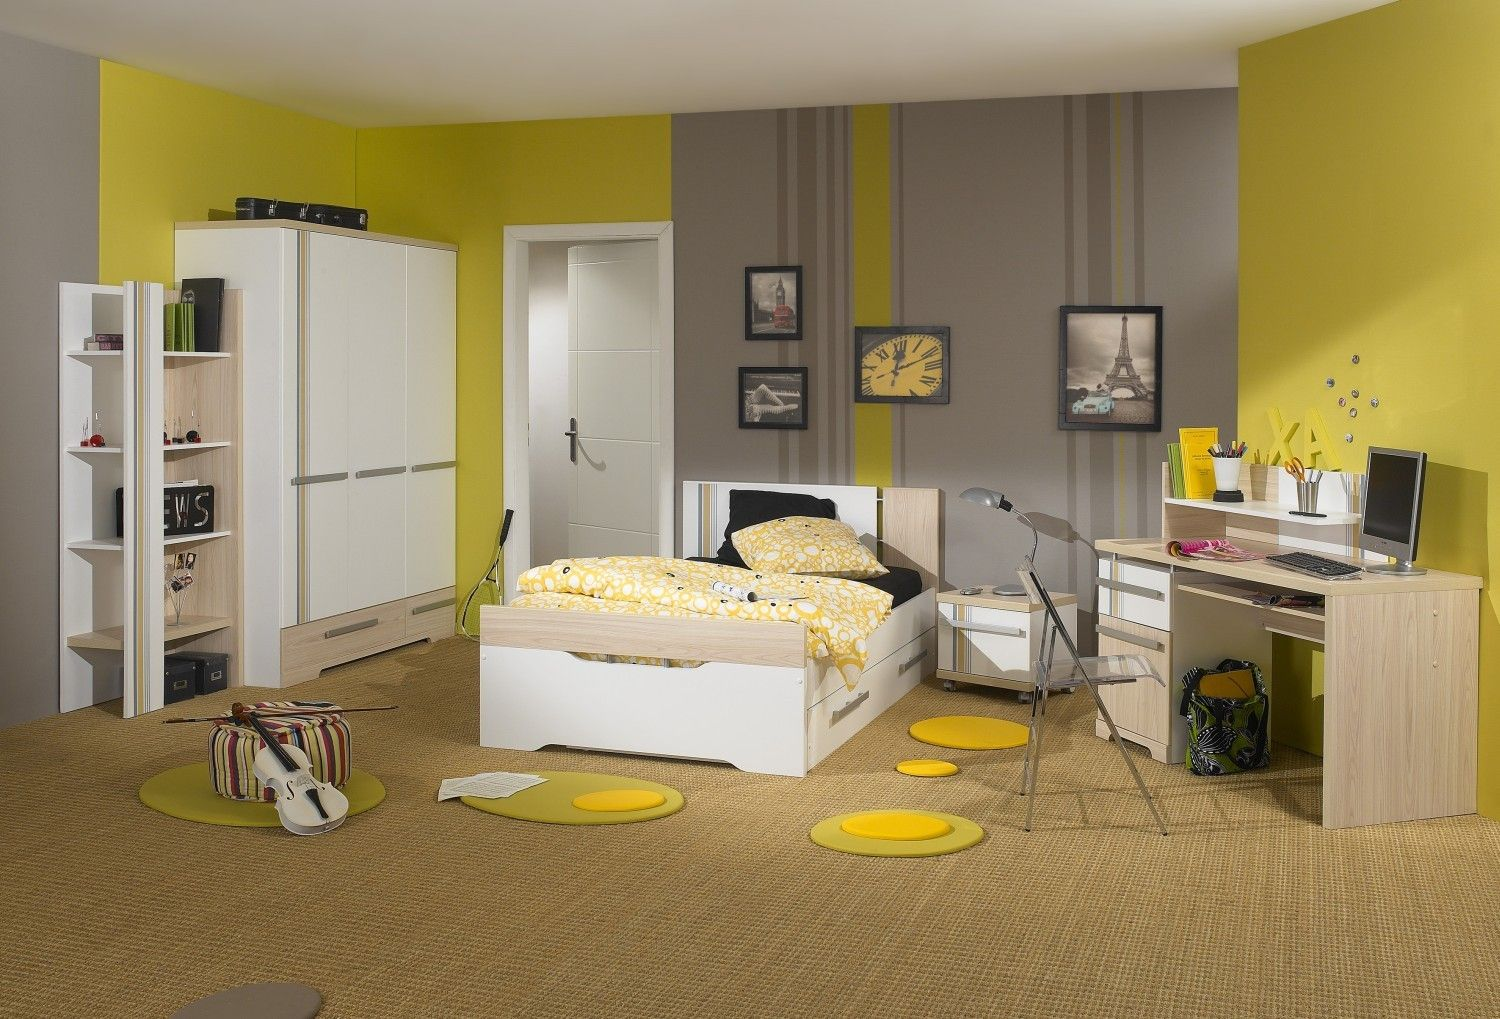 Computer Bedroom Decor Design bedroom decor yellow and grey wall colors decor with corner white